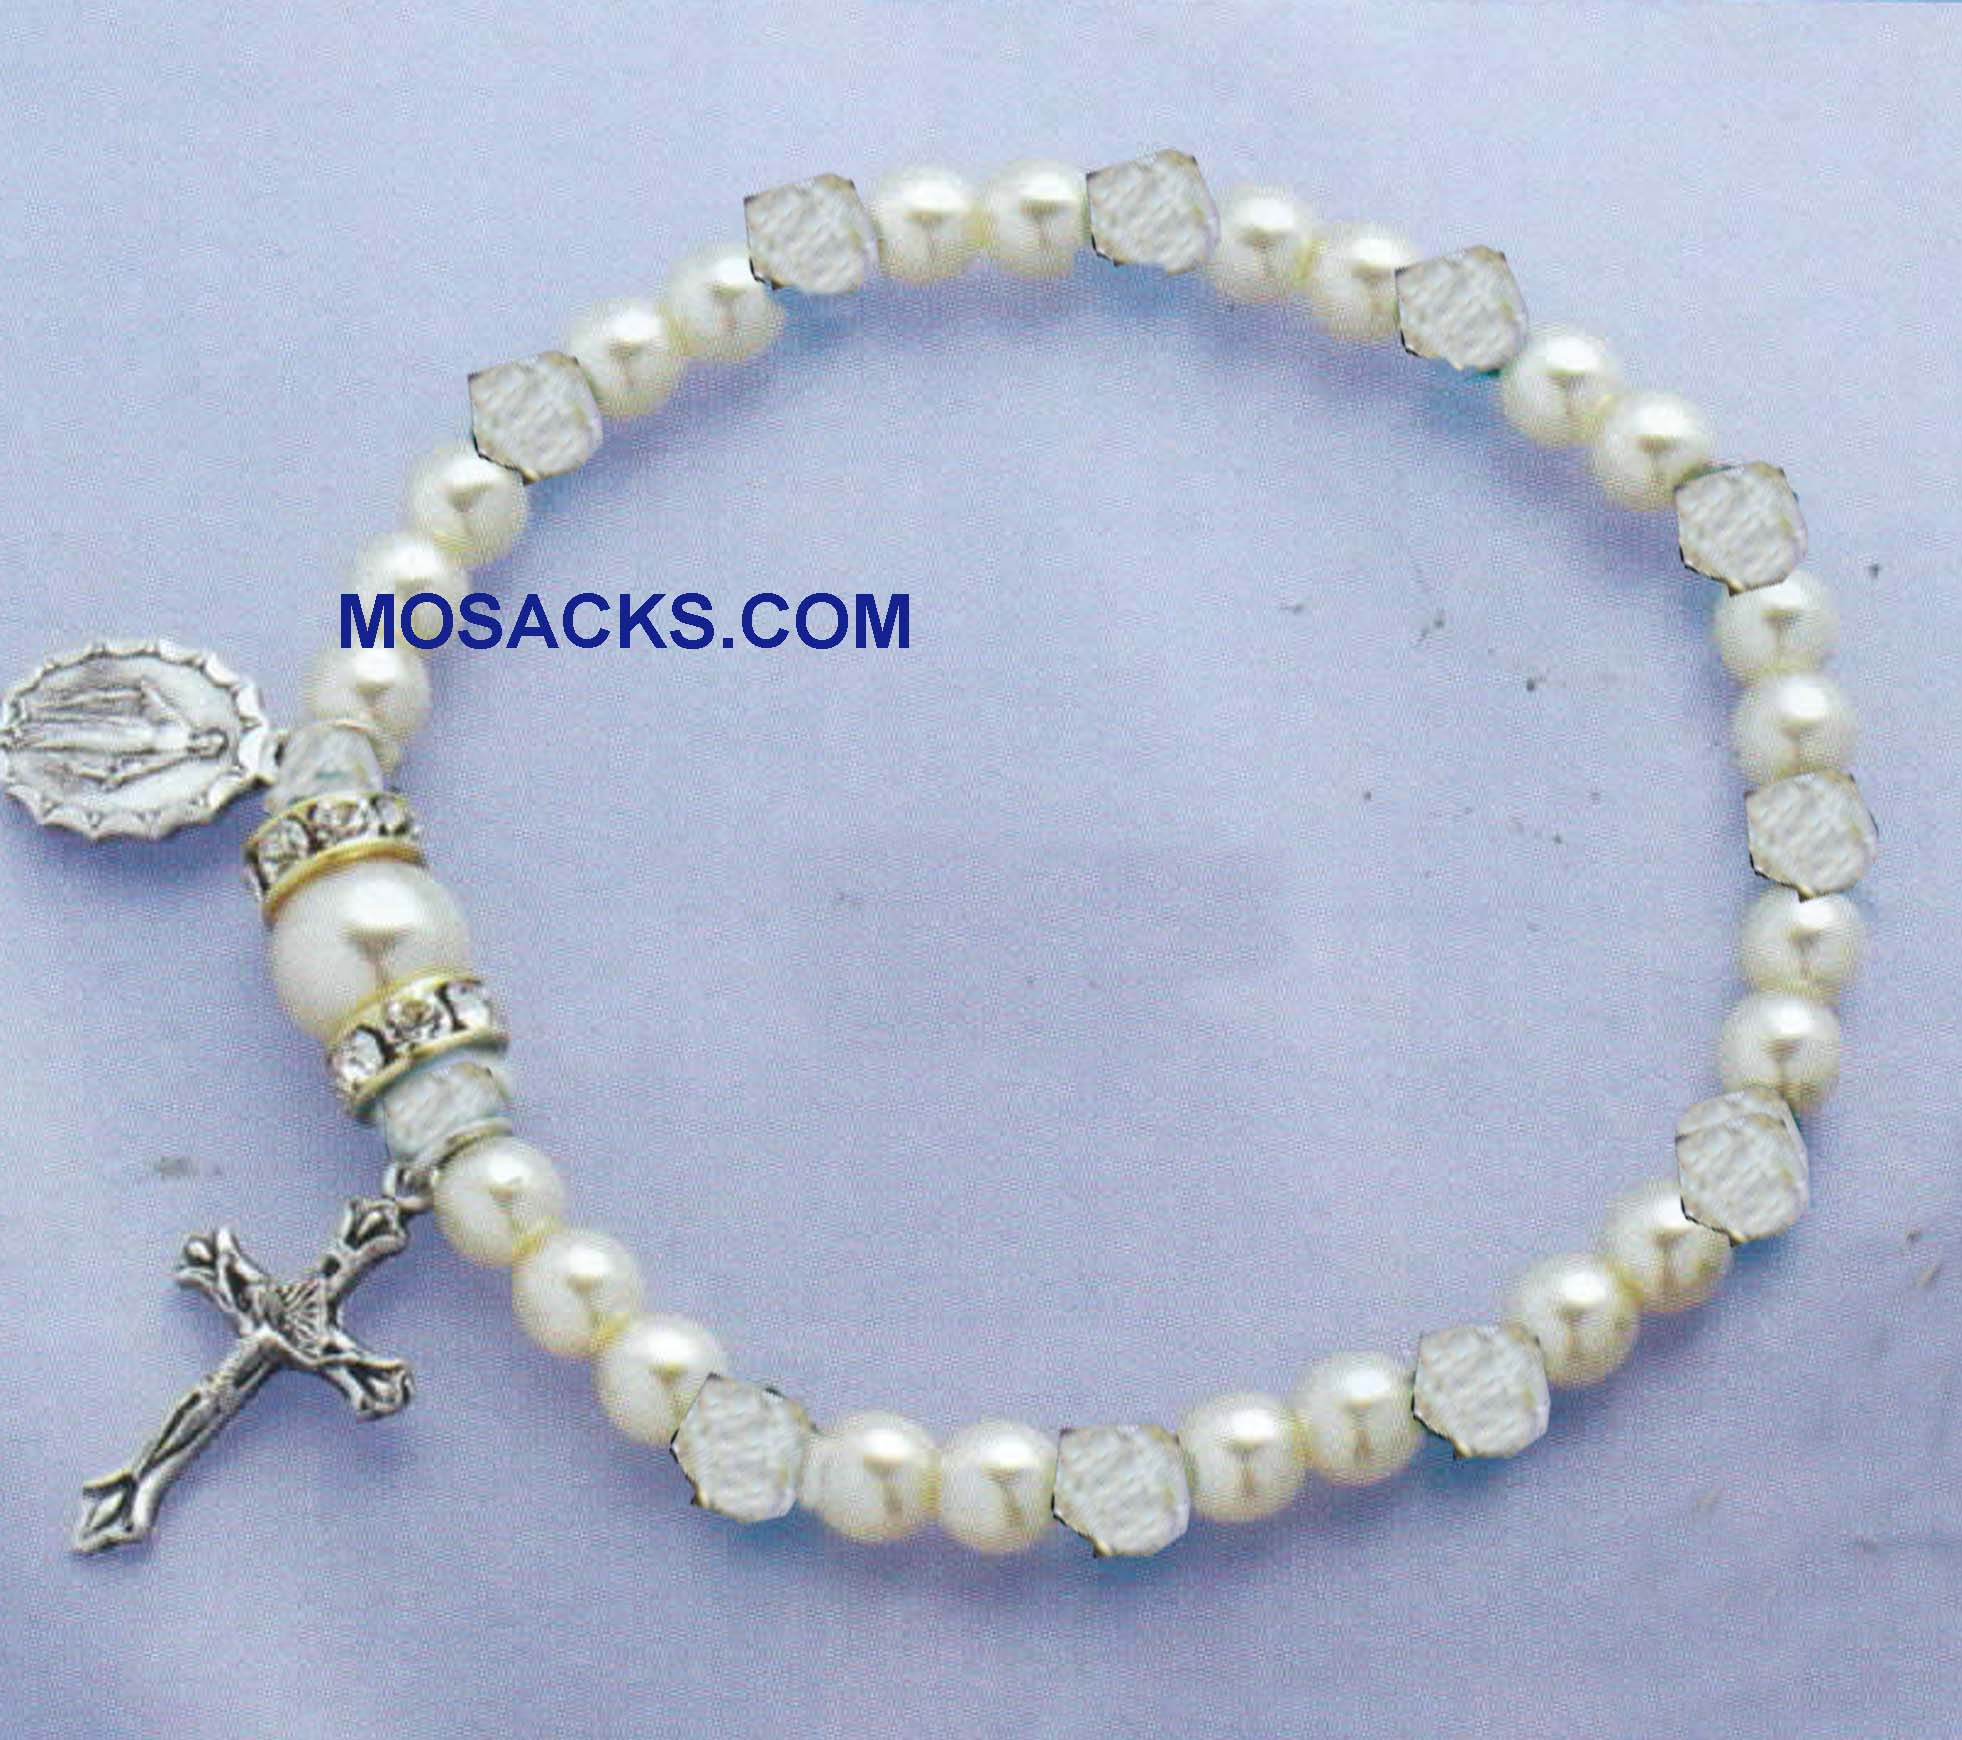 Birthstone Rosary Stretch Bracelet Crystal-45280CR